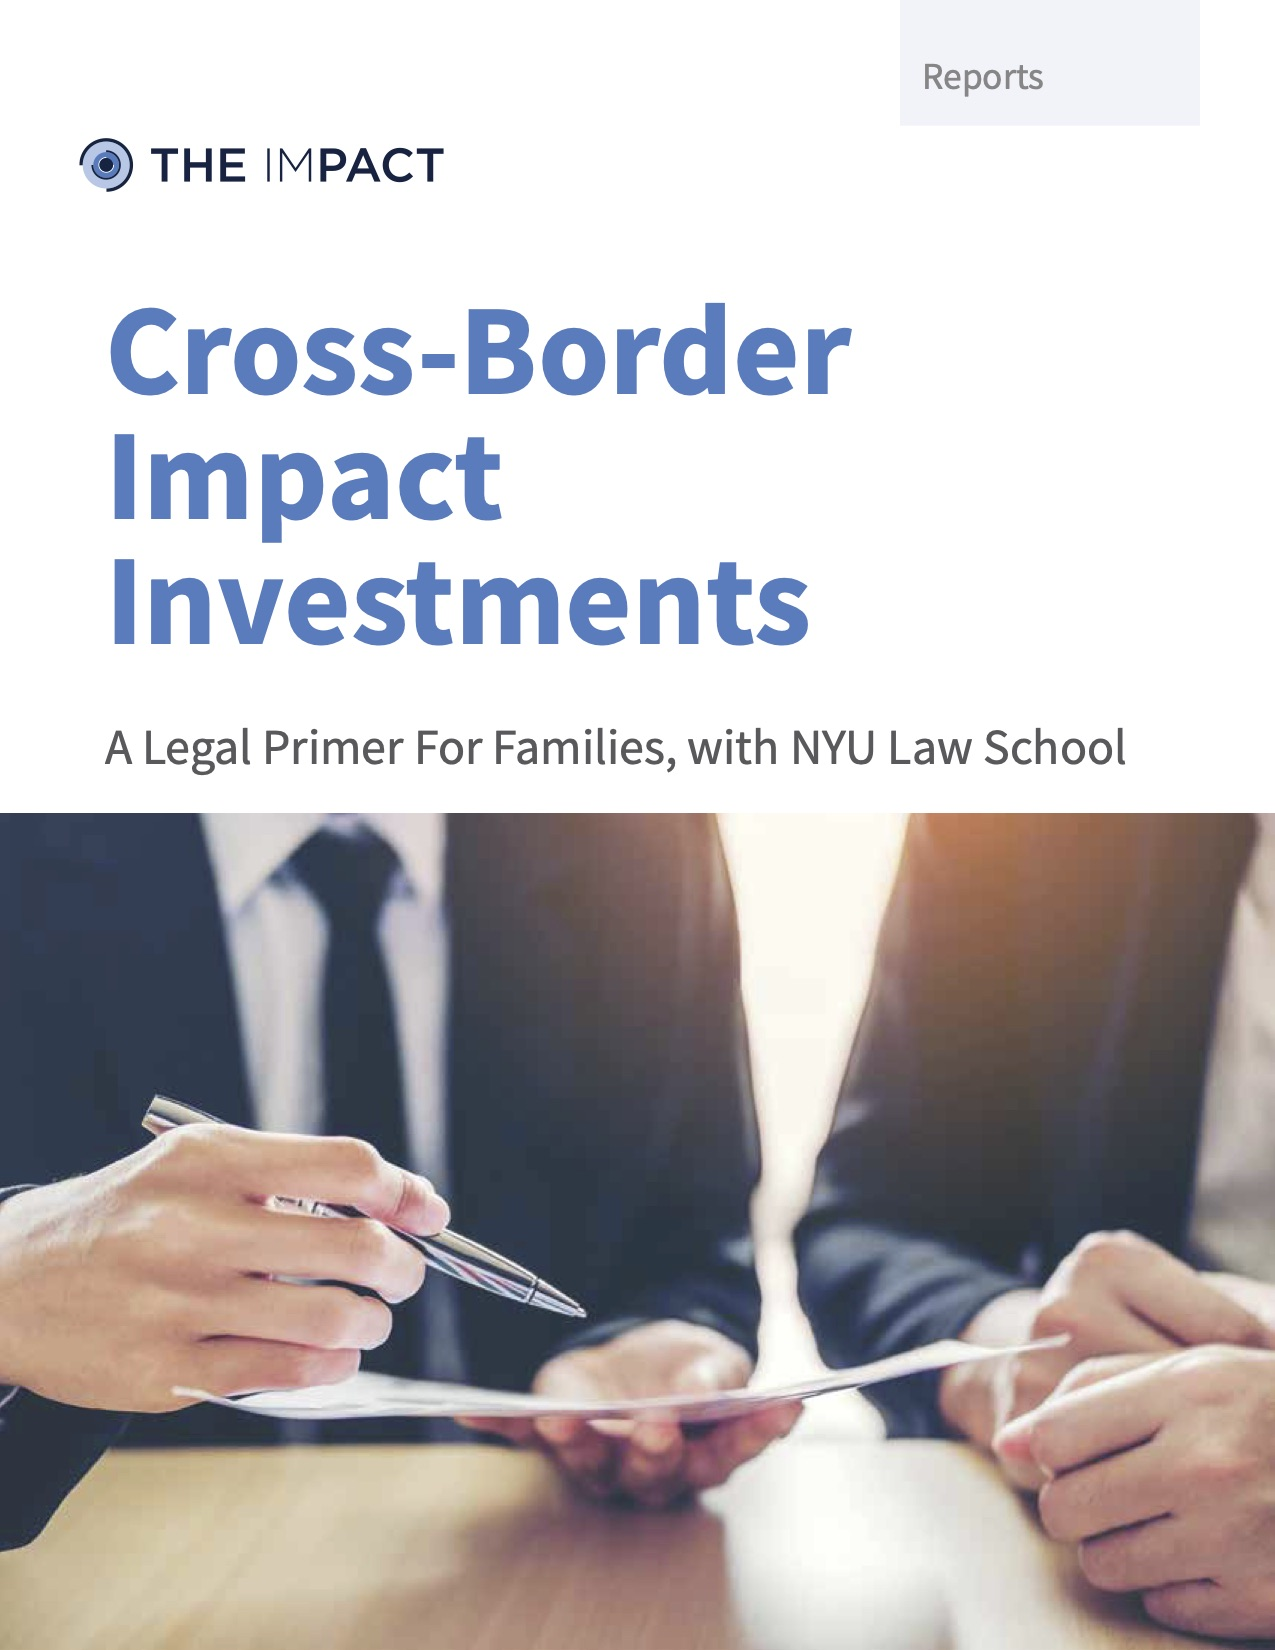 Cross-Border Impact Investments. A report by The ImPact.